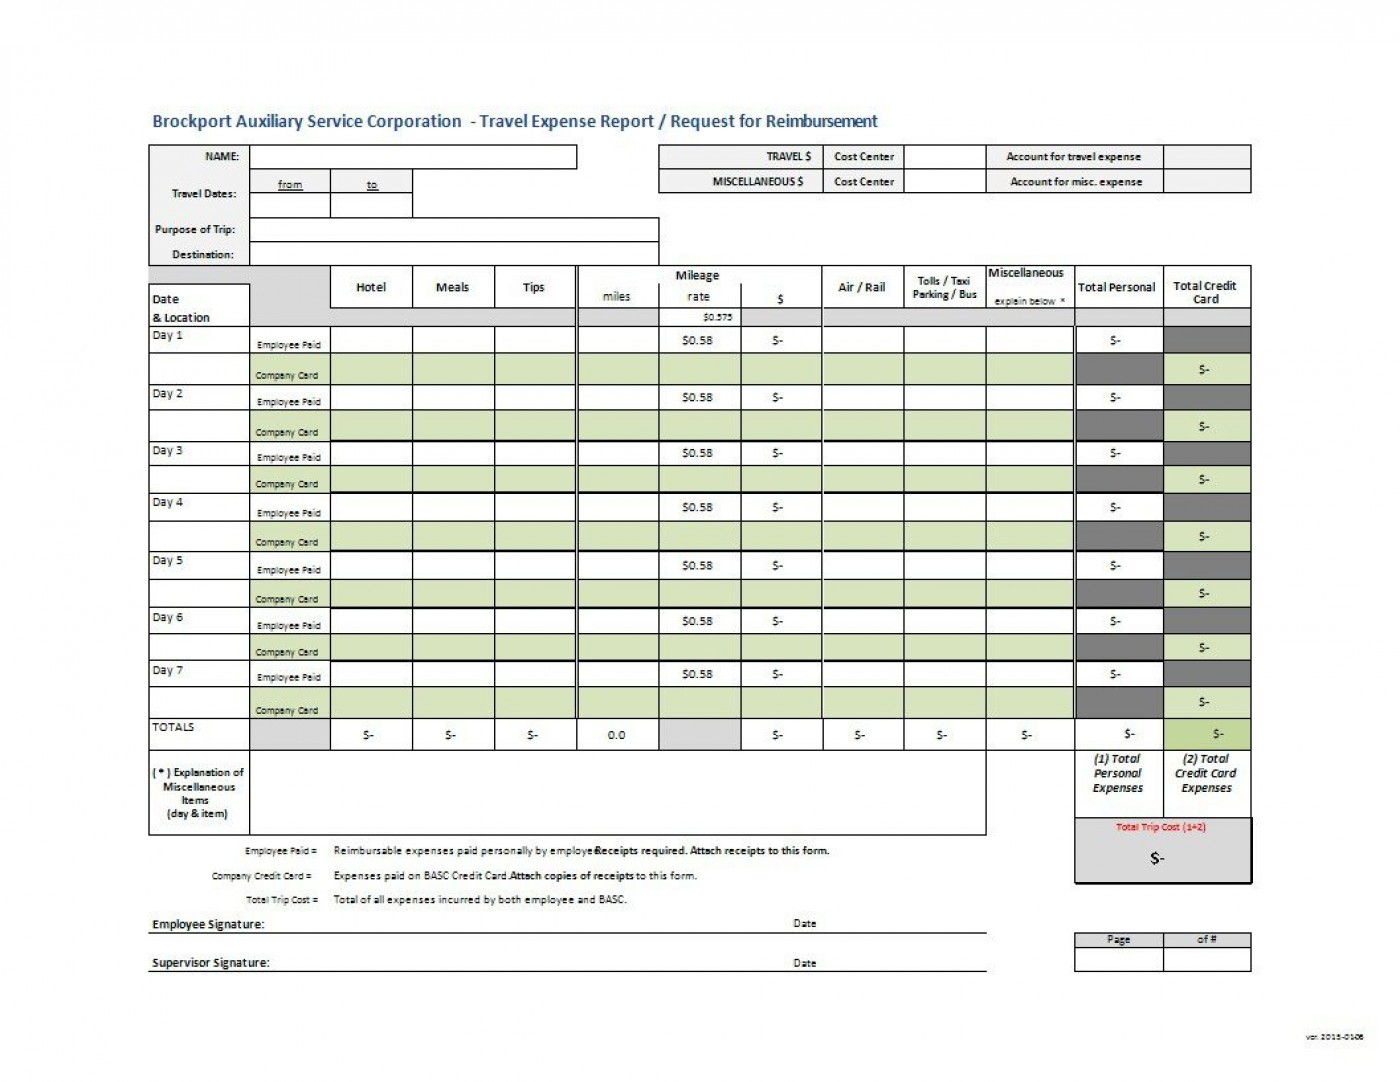 000 Archaicawful Travel Expense Report Template Highest Clarity  Format Excel Free1400